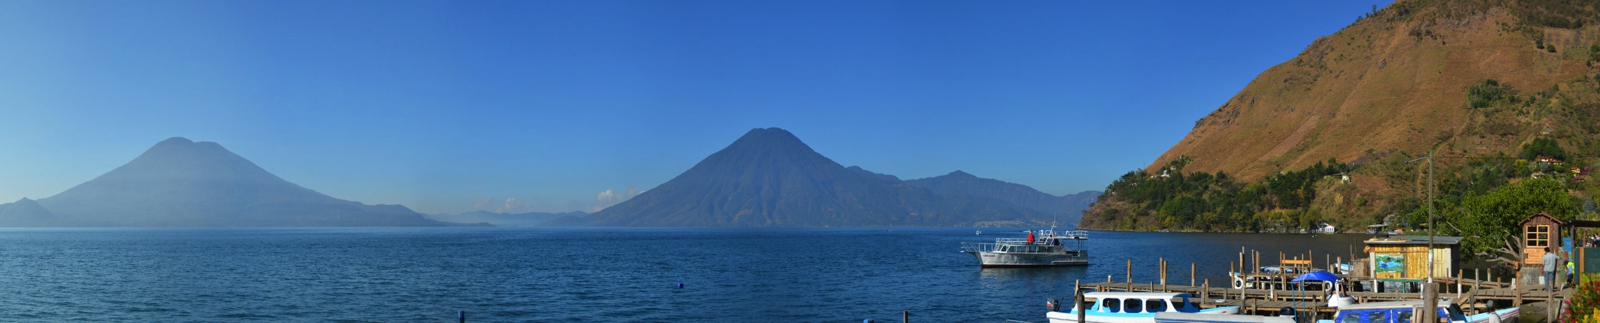 Lake Atitlán (click on image to view larger picture)